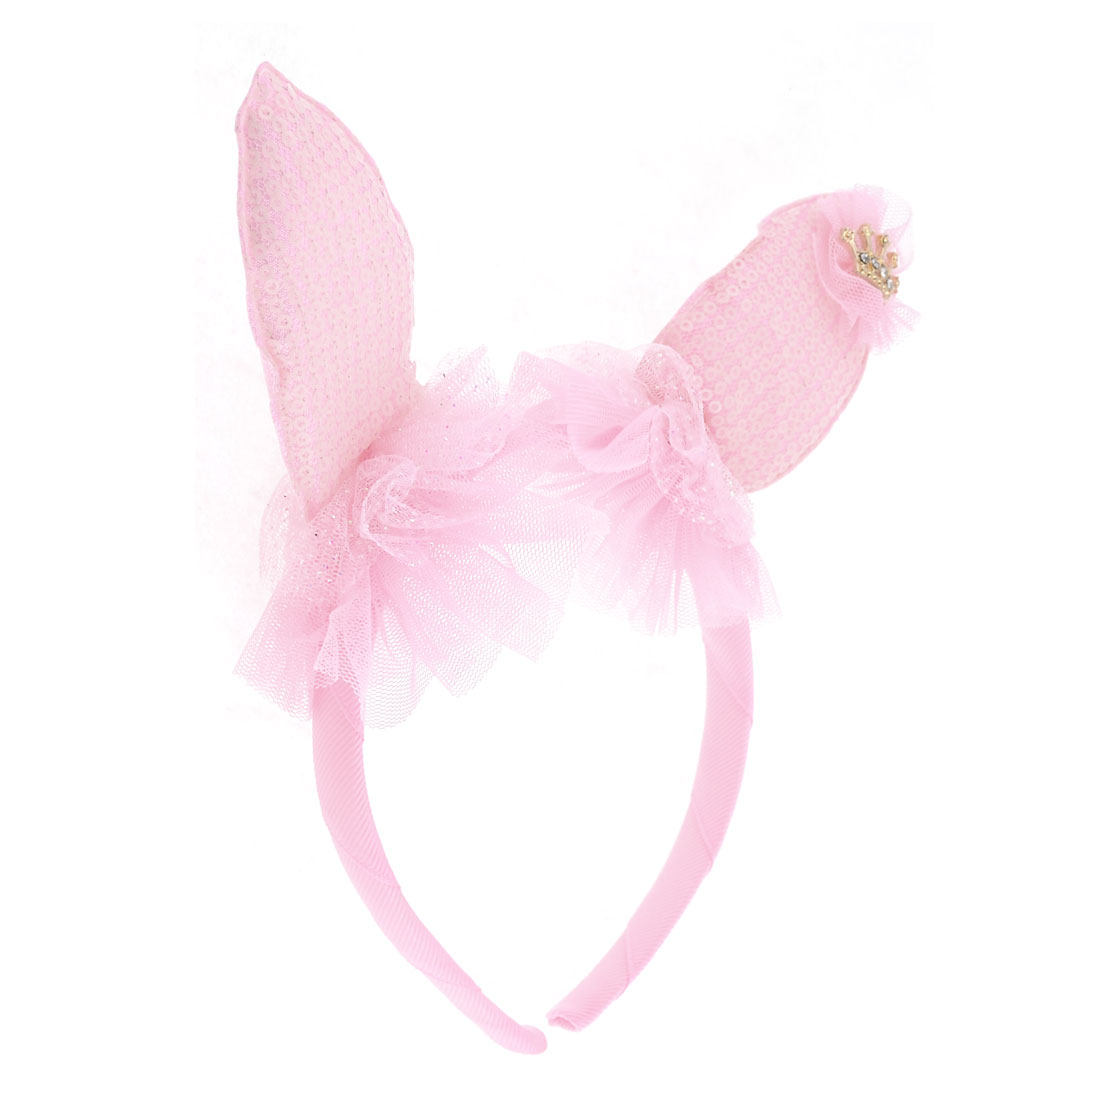 Rabbit Ear Detail Coated Polyester Hair Hoop Headband Pink for Girl